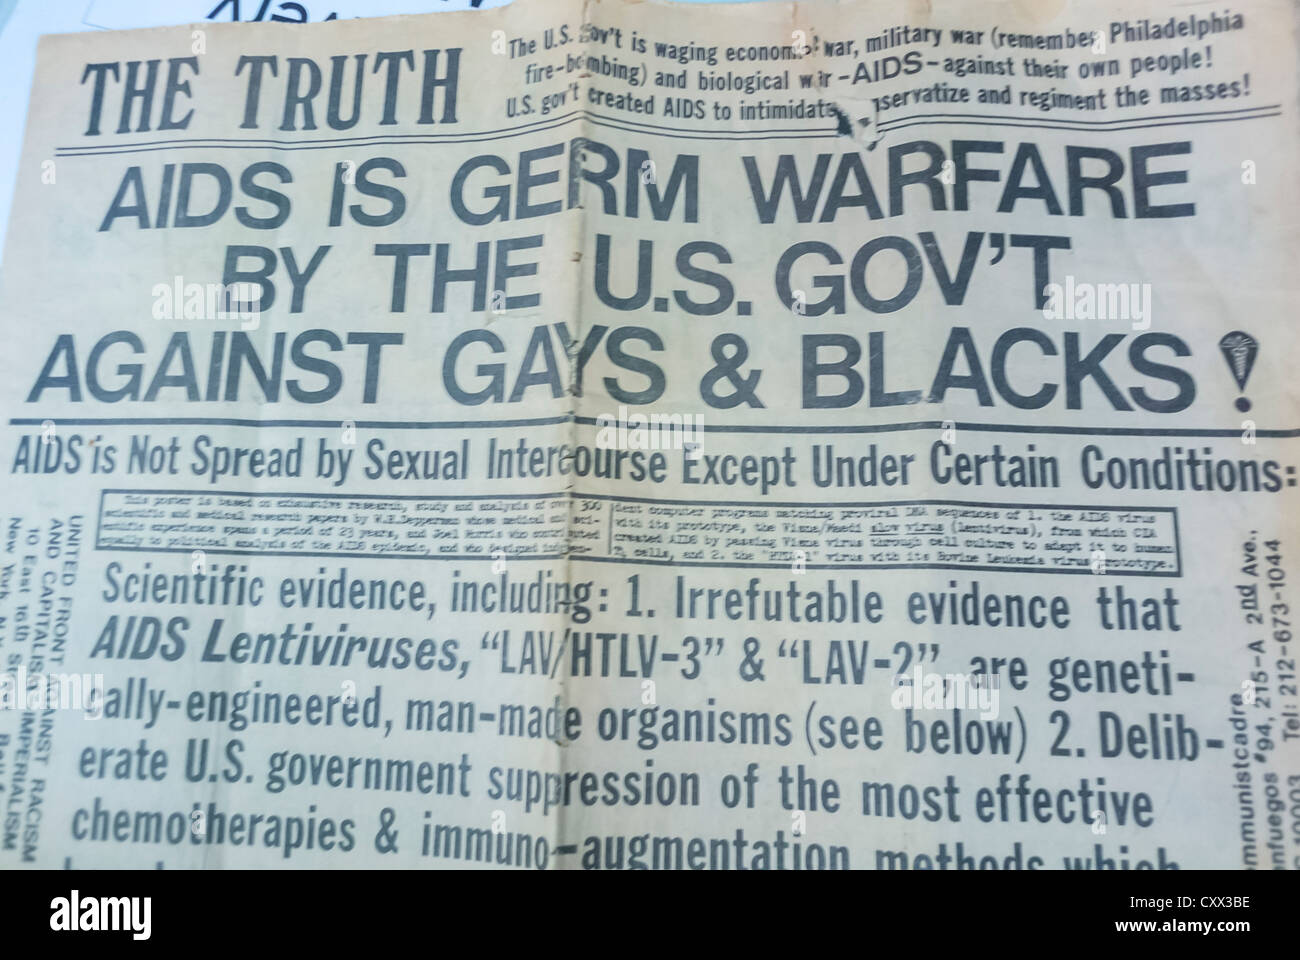 """New York, NY, USA, Communist Party Newspaper Headlines claiming """"AIDS is Germ Warfare by the U.S. Government Against Stock Photo"""